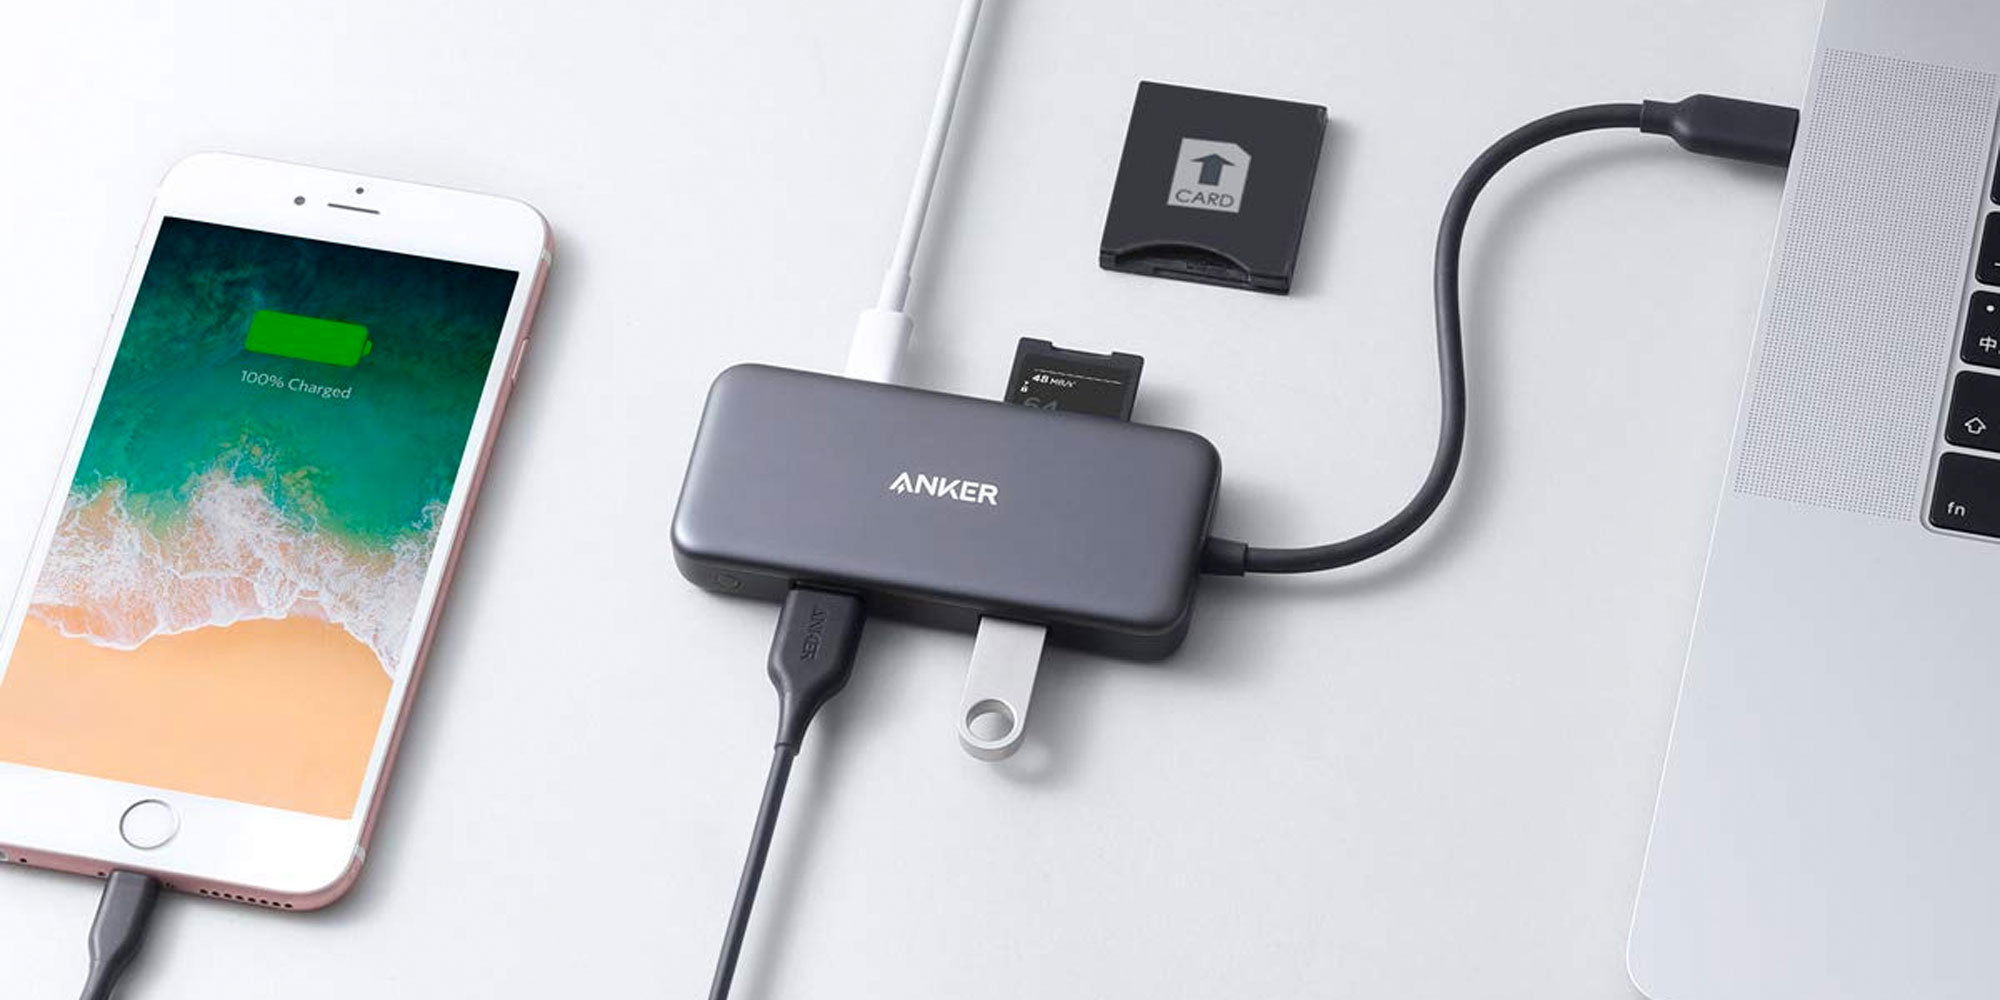 Expand your MacBook's I/O with these Anker USB-C hubs at $17 each (Reg. $26) - 9to5Toys